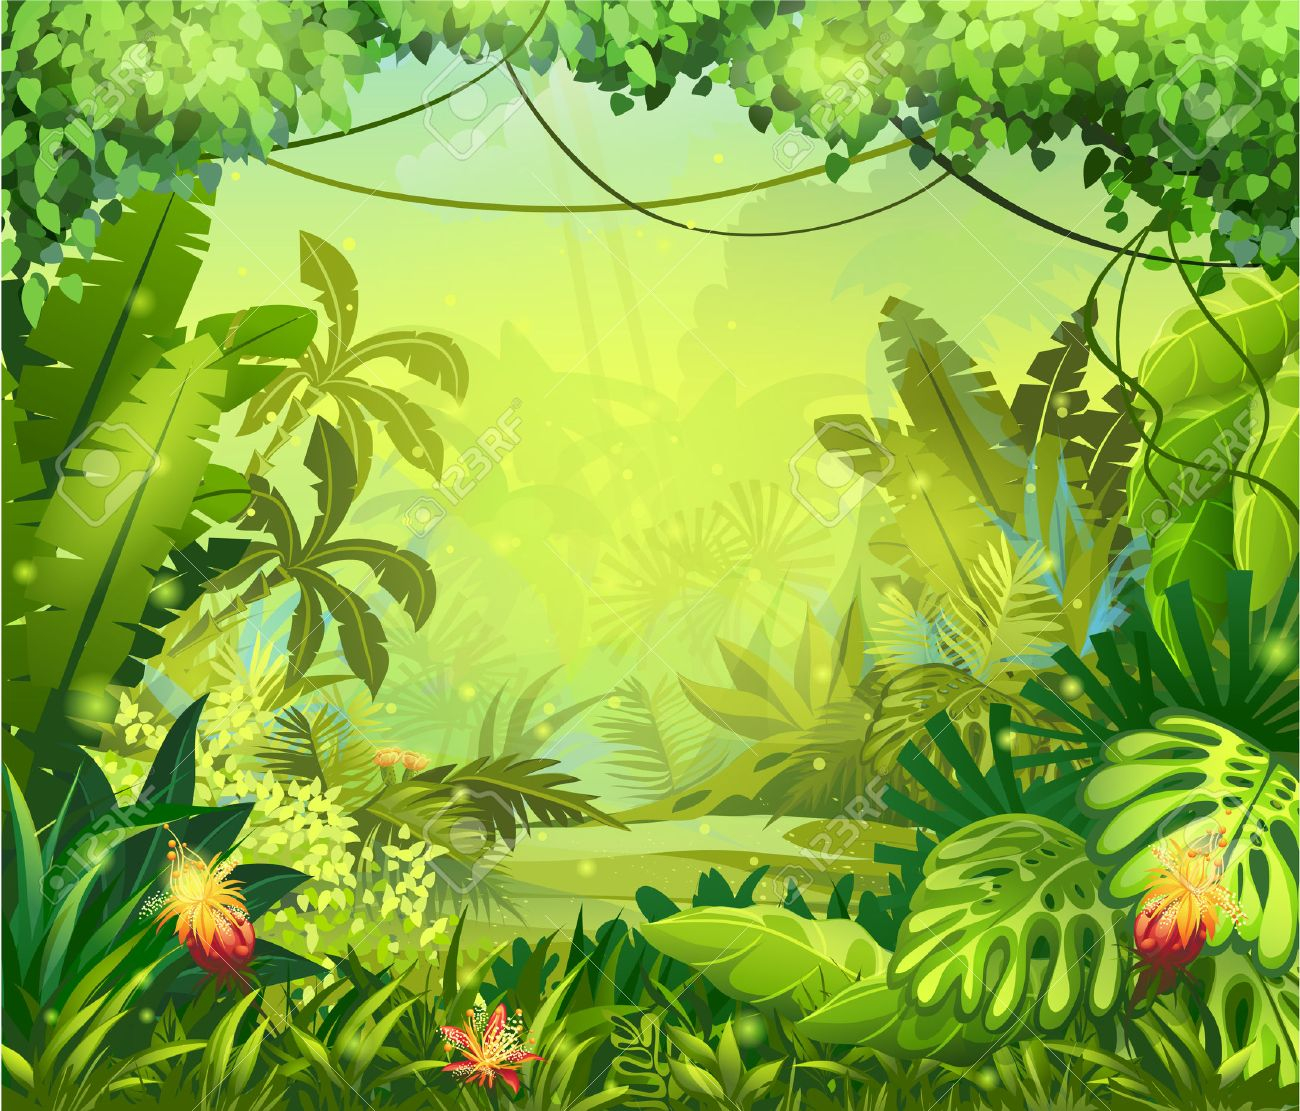 Illustration jungle with red flowers - 30922317